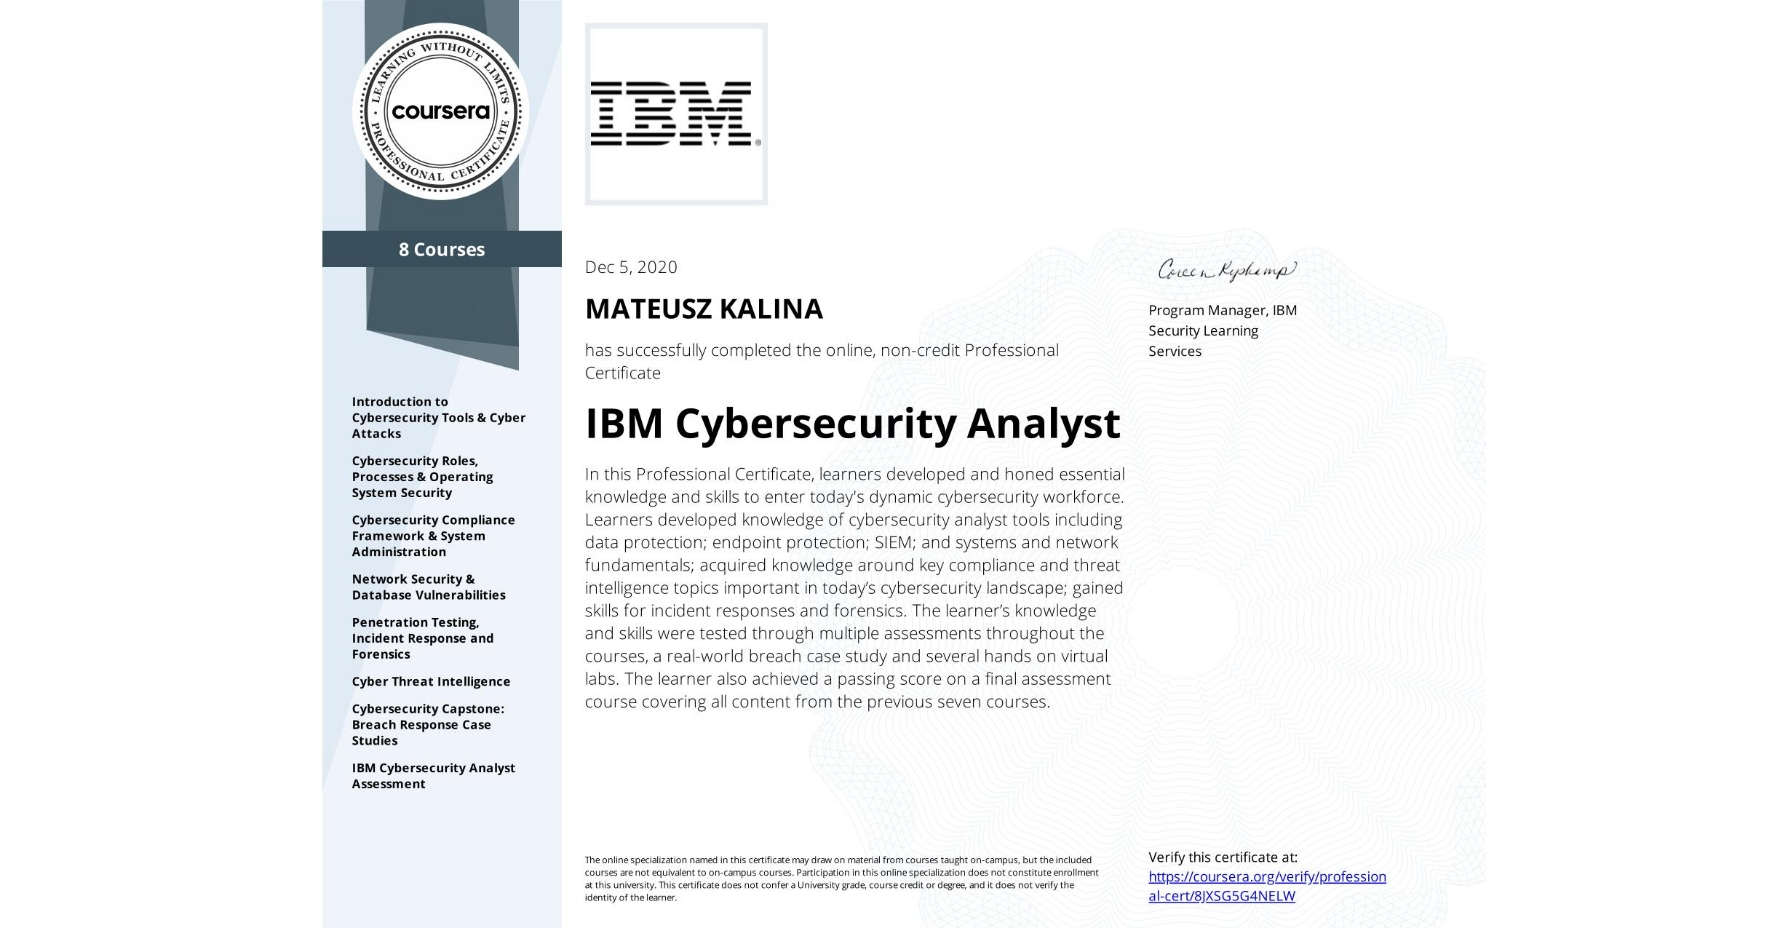 View certificate for MATEUSZ KALINA, IBM Cybersecurity Analyst, offered through Coursera. In this Professional Certificate, learners developed and honed essential knowledge and skills to enter today's dynamic cybersecurity workforce.  Learners developed knowledge of cybersecurity analyst tools including data protection; endpoint protection; SIEM; and systems and network fundamentals; acquired knowledge around key compliance and threat intelligence topics important in today's cybersecurity landscape; gained skills for incident responses and forensics.  The learner's knowledge and skills were tested through multiple assessments throughout the courses, a real-world breach case study and several hands on virtual labs.  The learner also achieved a passing score on a final assessment course covering all content from the previous seven courses.